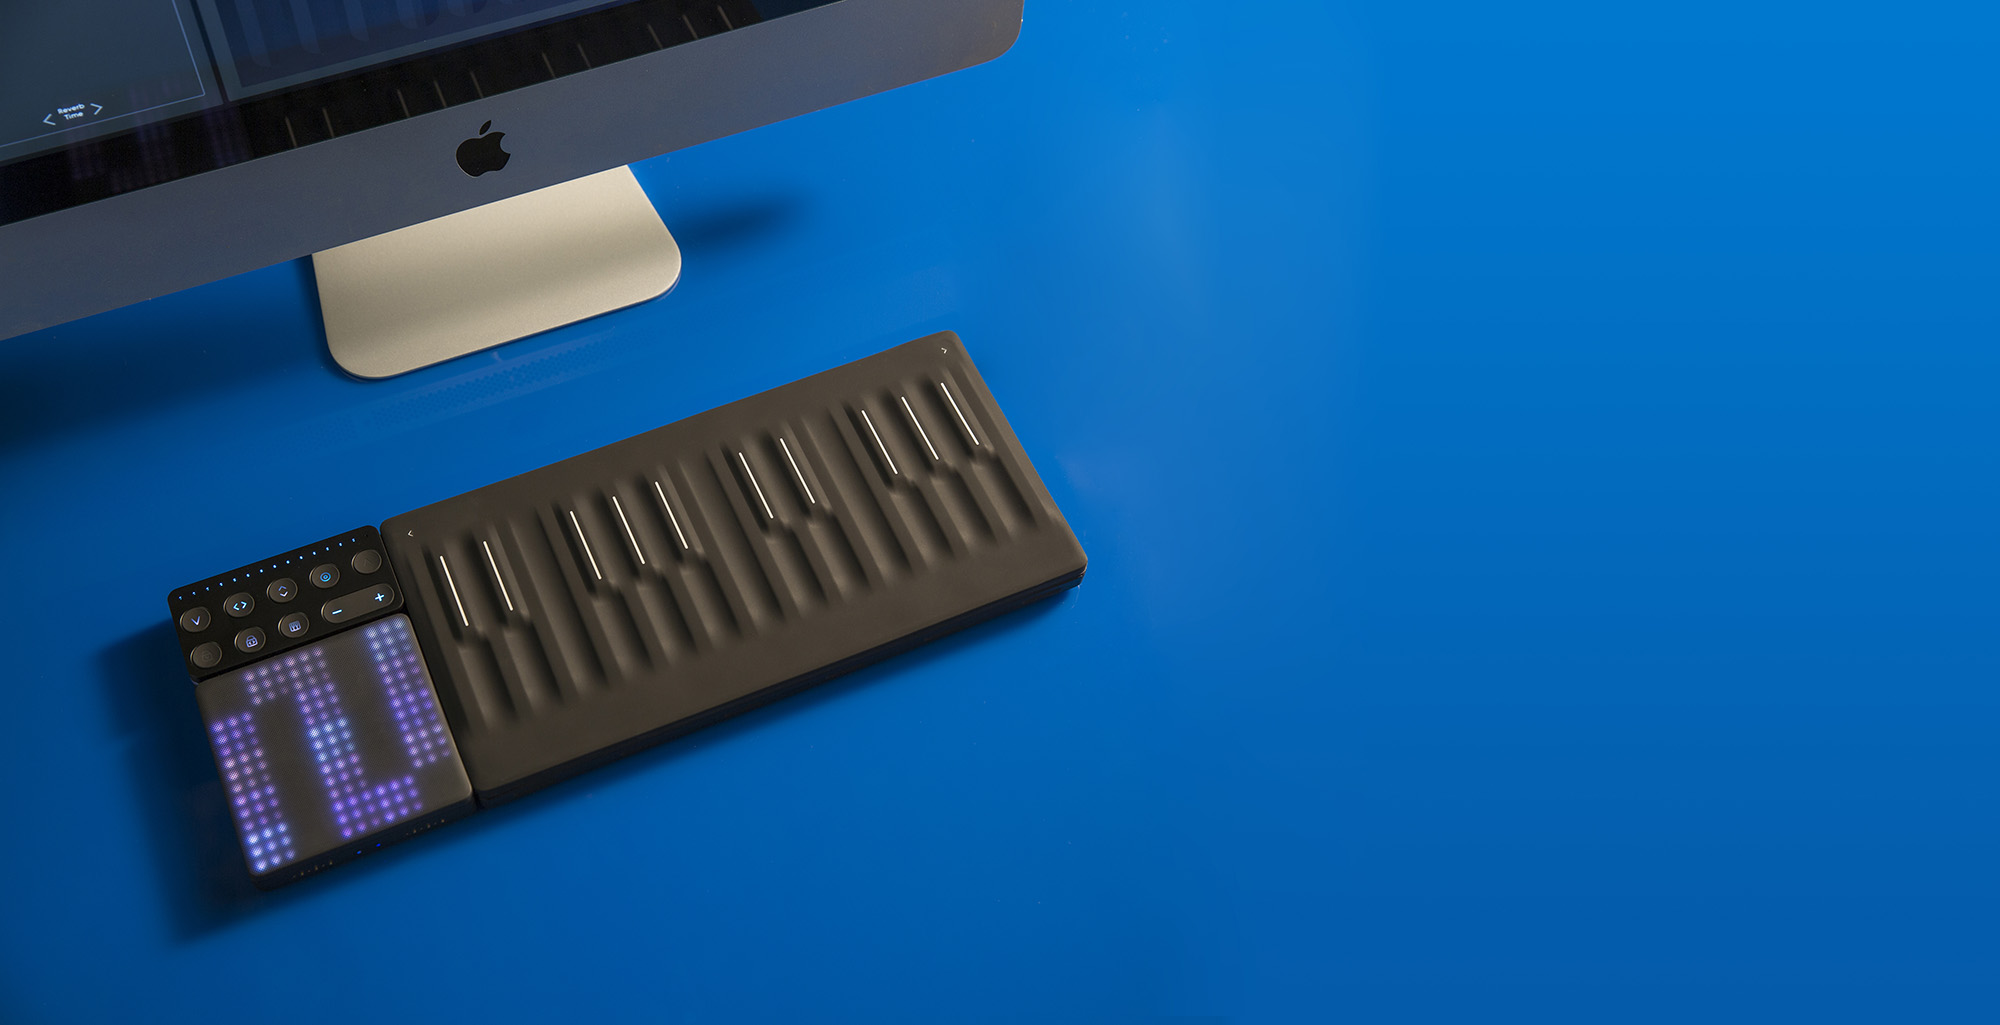 Roli's Seaboard Block has Officially Landed in Australia